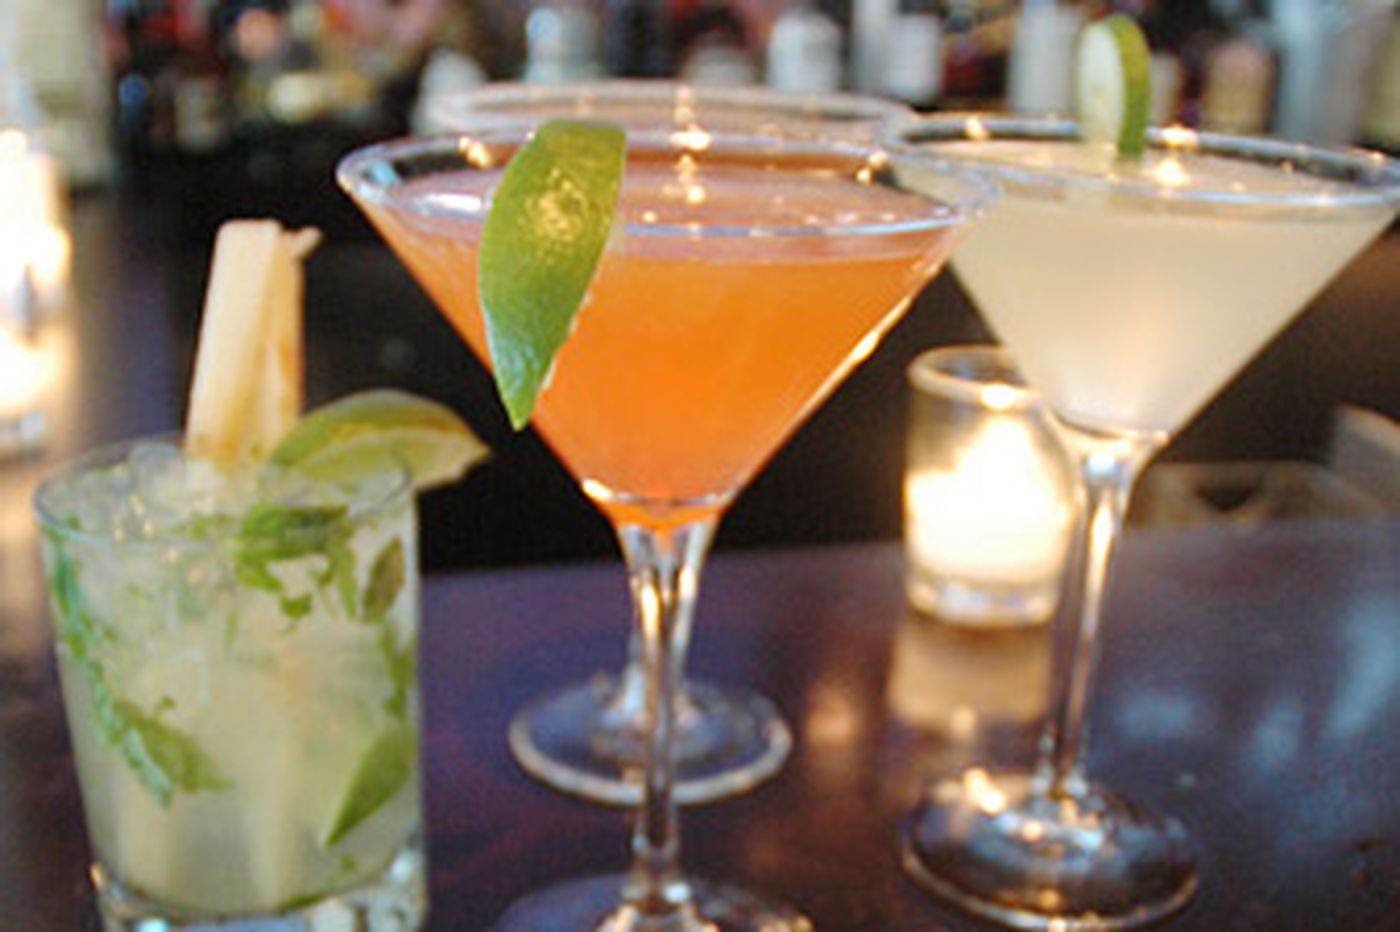 Healthy happy hours: Taste & value mark a new generation of bar snacks